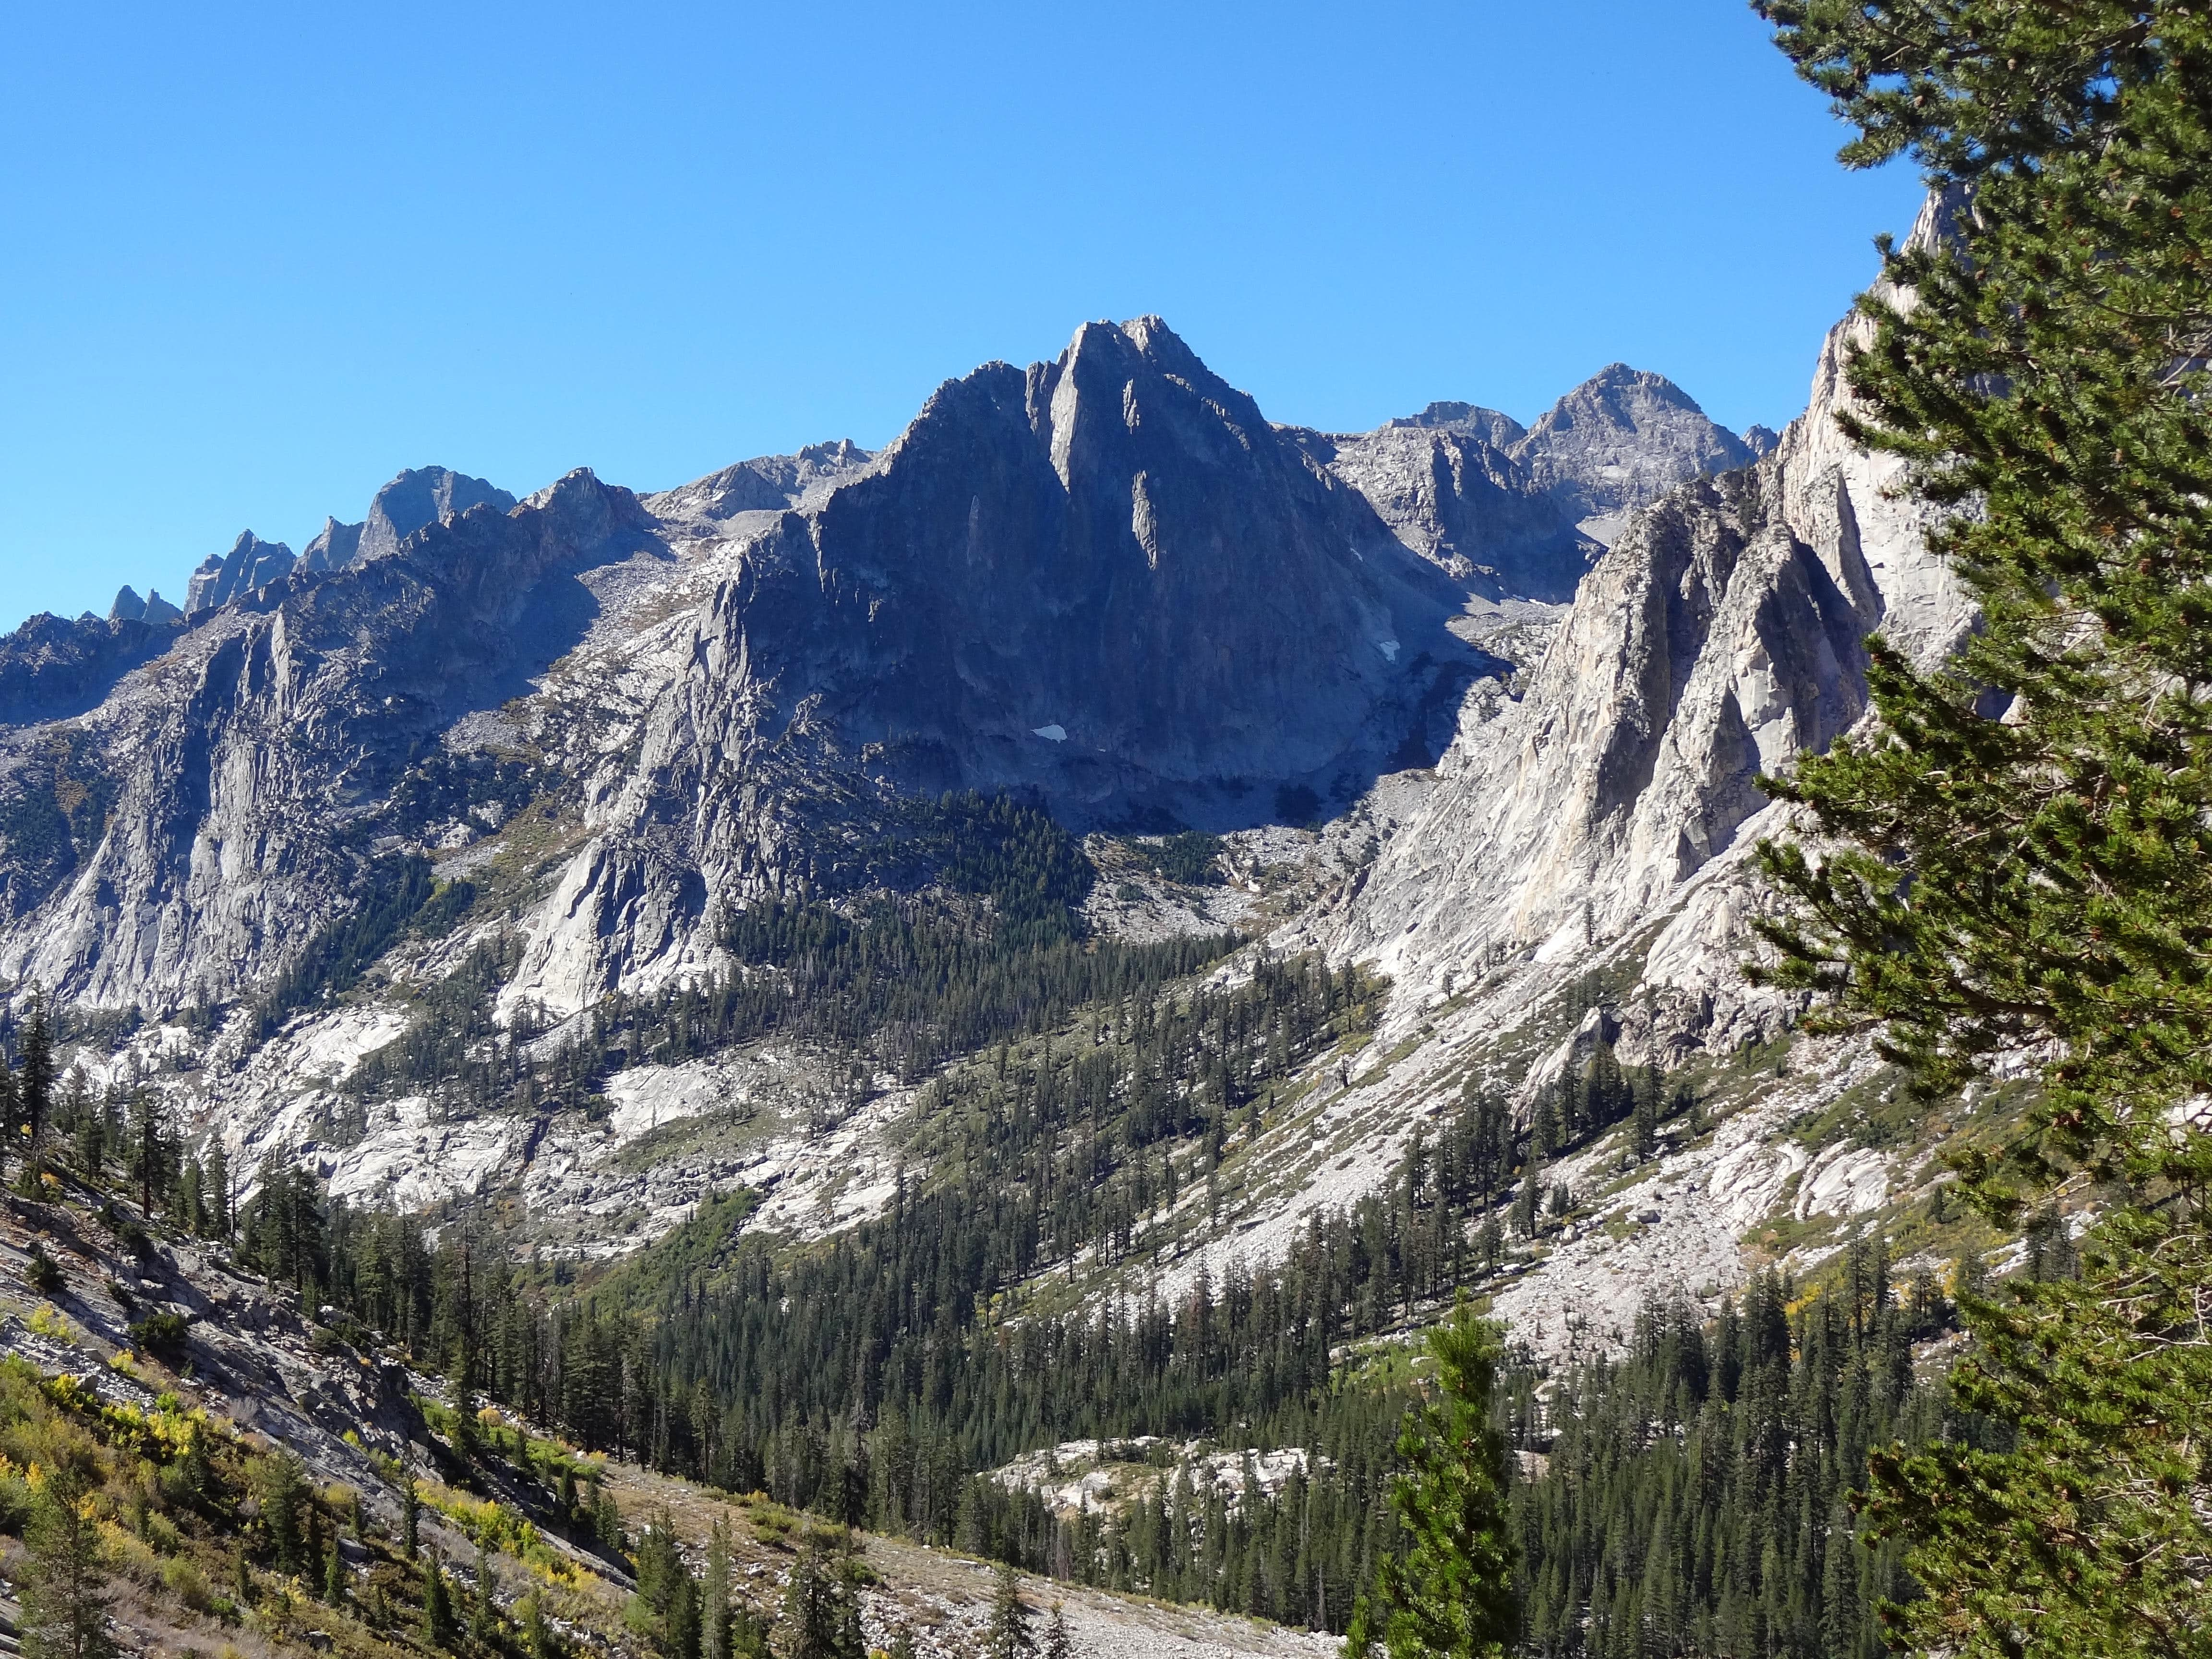 Bishop Pass, LeConte Canyon & The Citadel